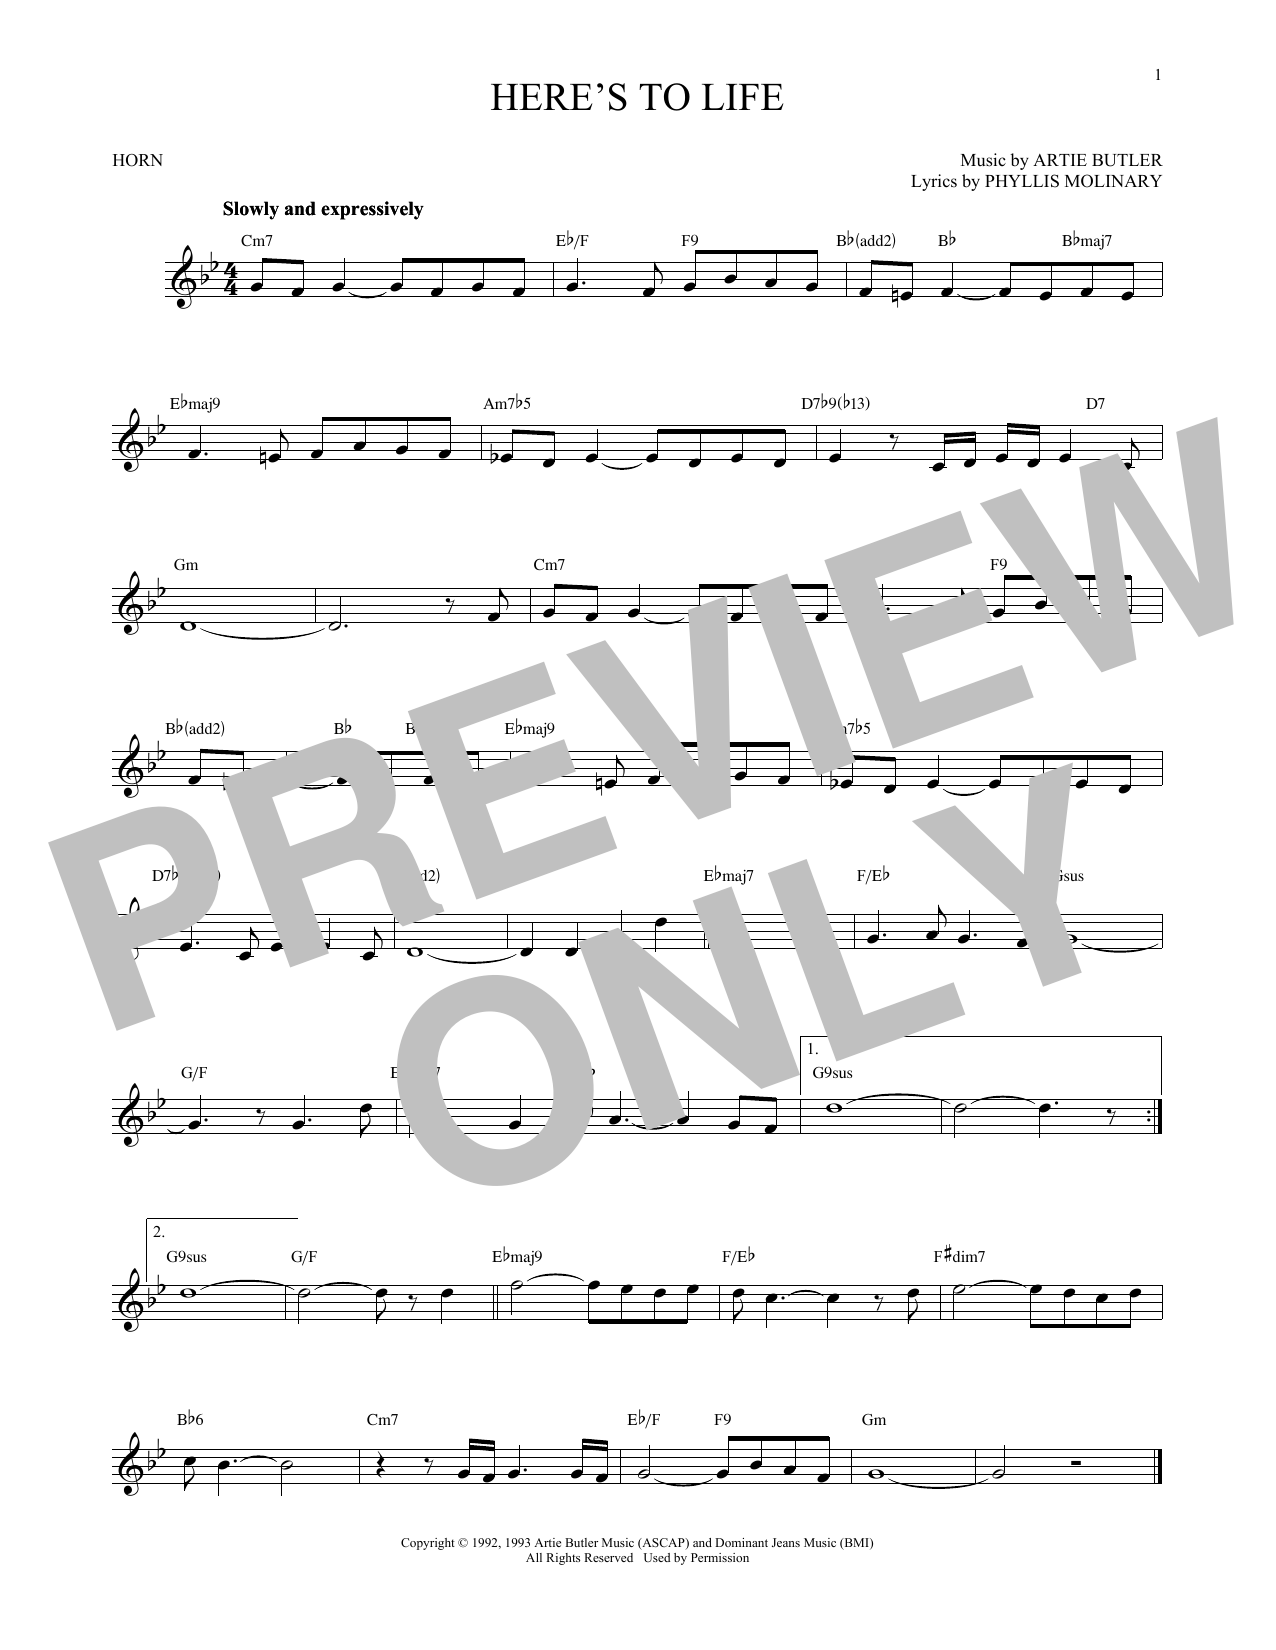 Here's To Life (French Horn Solo)